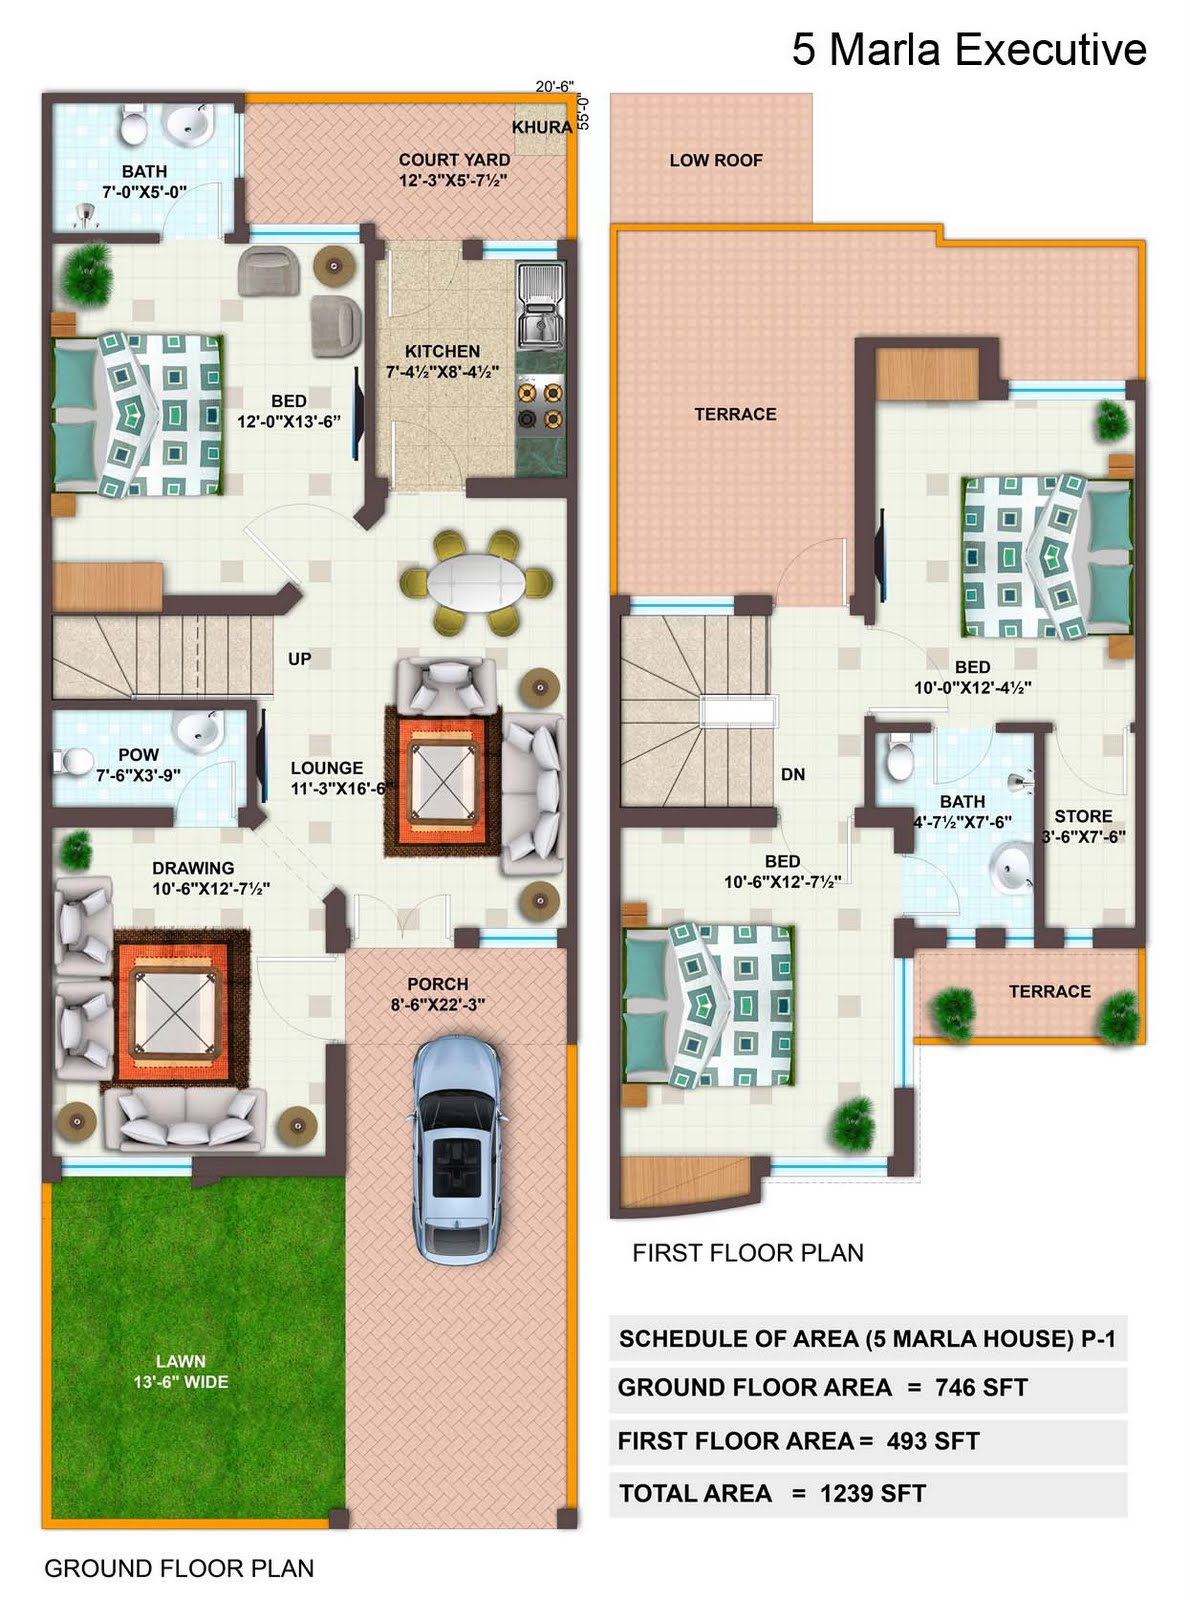 5 marla house plans civil engineers pk for House map drawing